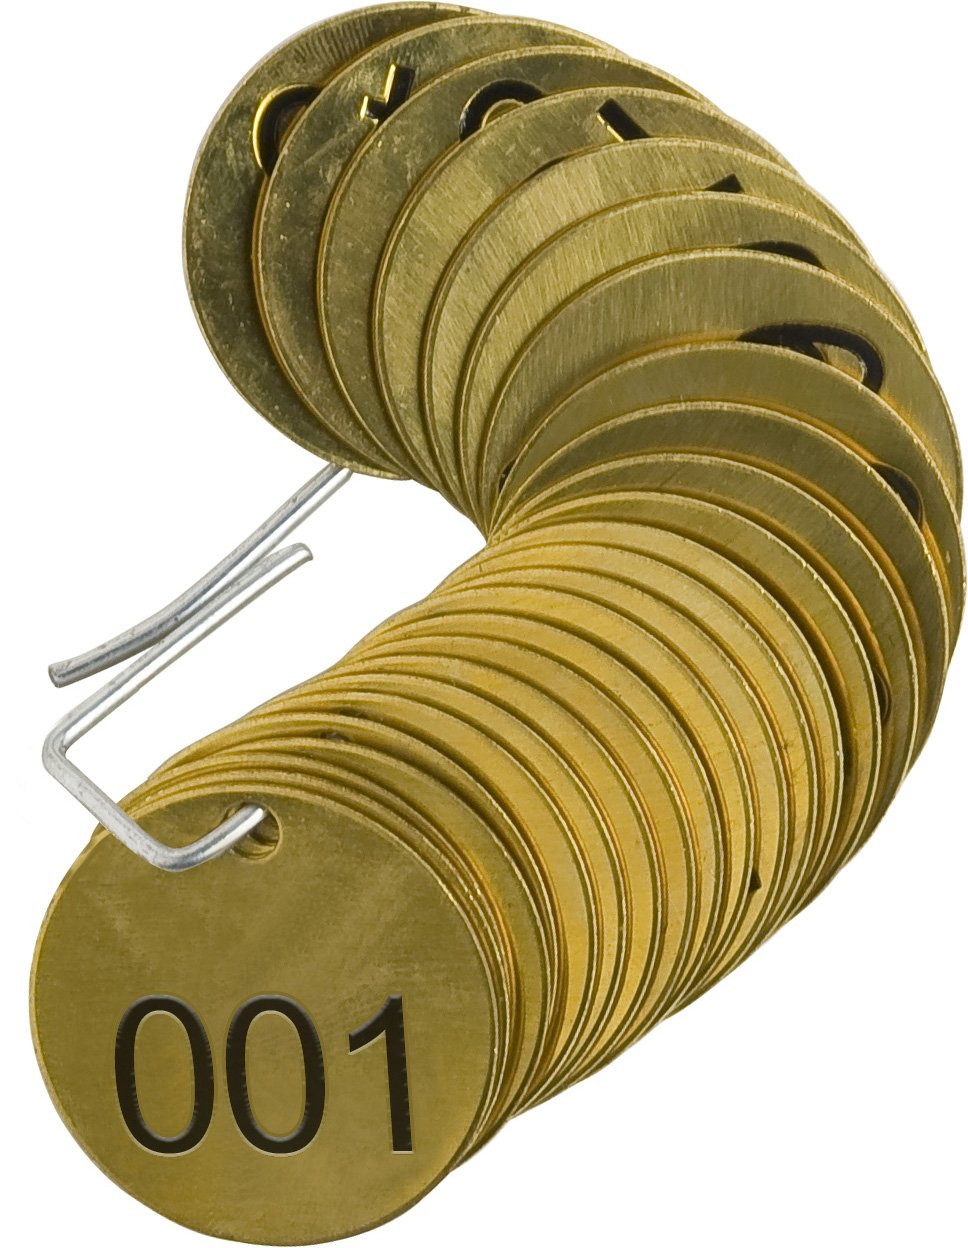 Brady 23200 1-1/2'' Diameter, B-907 Brass, Brass Color, Number Sequence 001-025 Round Stamped Brass Valve Tags, Top Line Legend (Blank) (Pack Of 25) by Brady